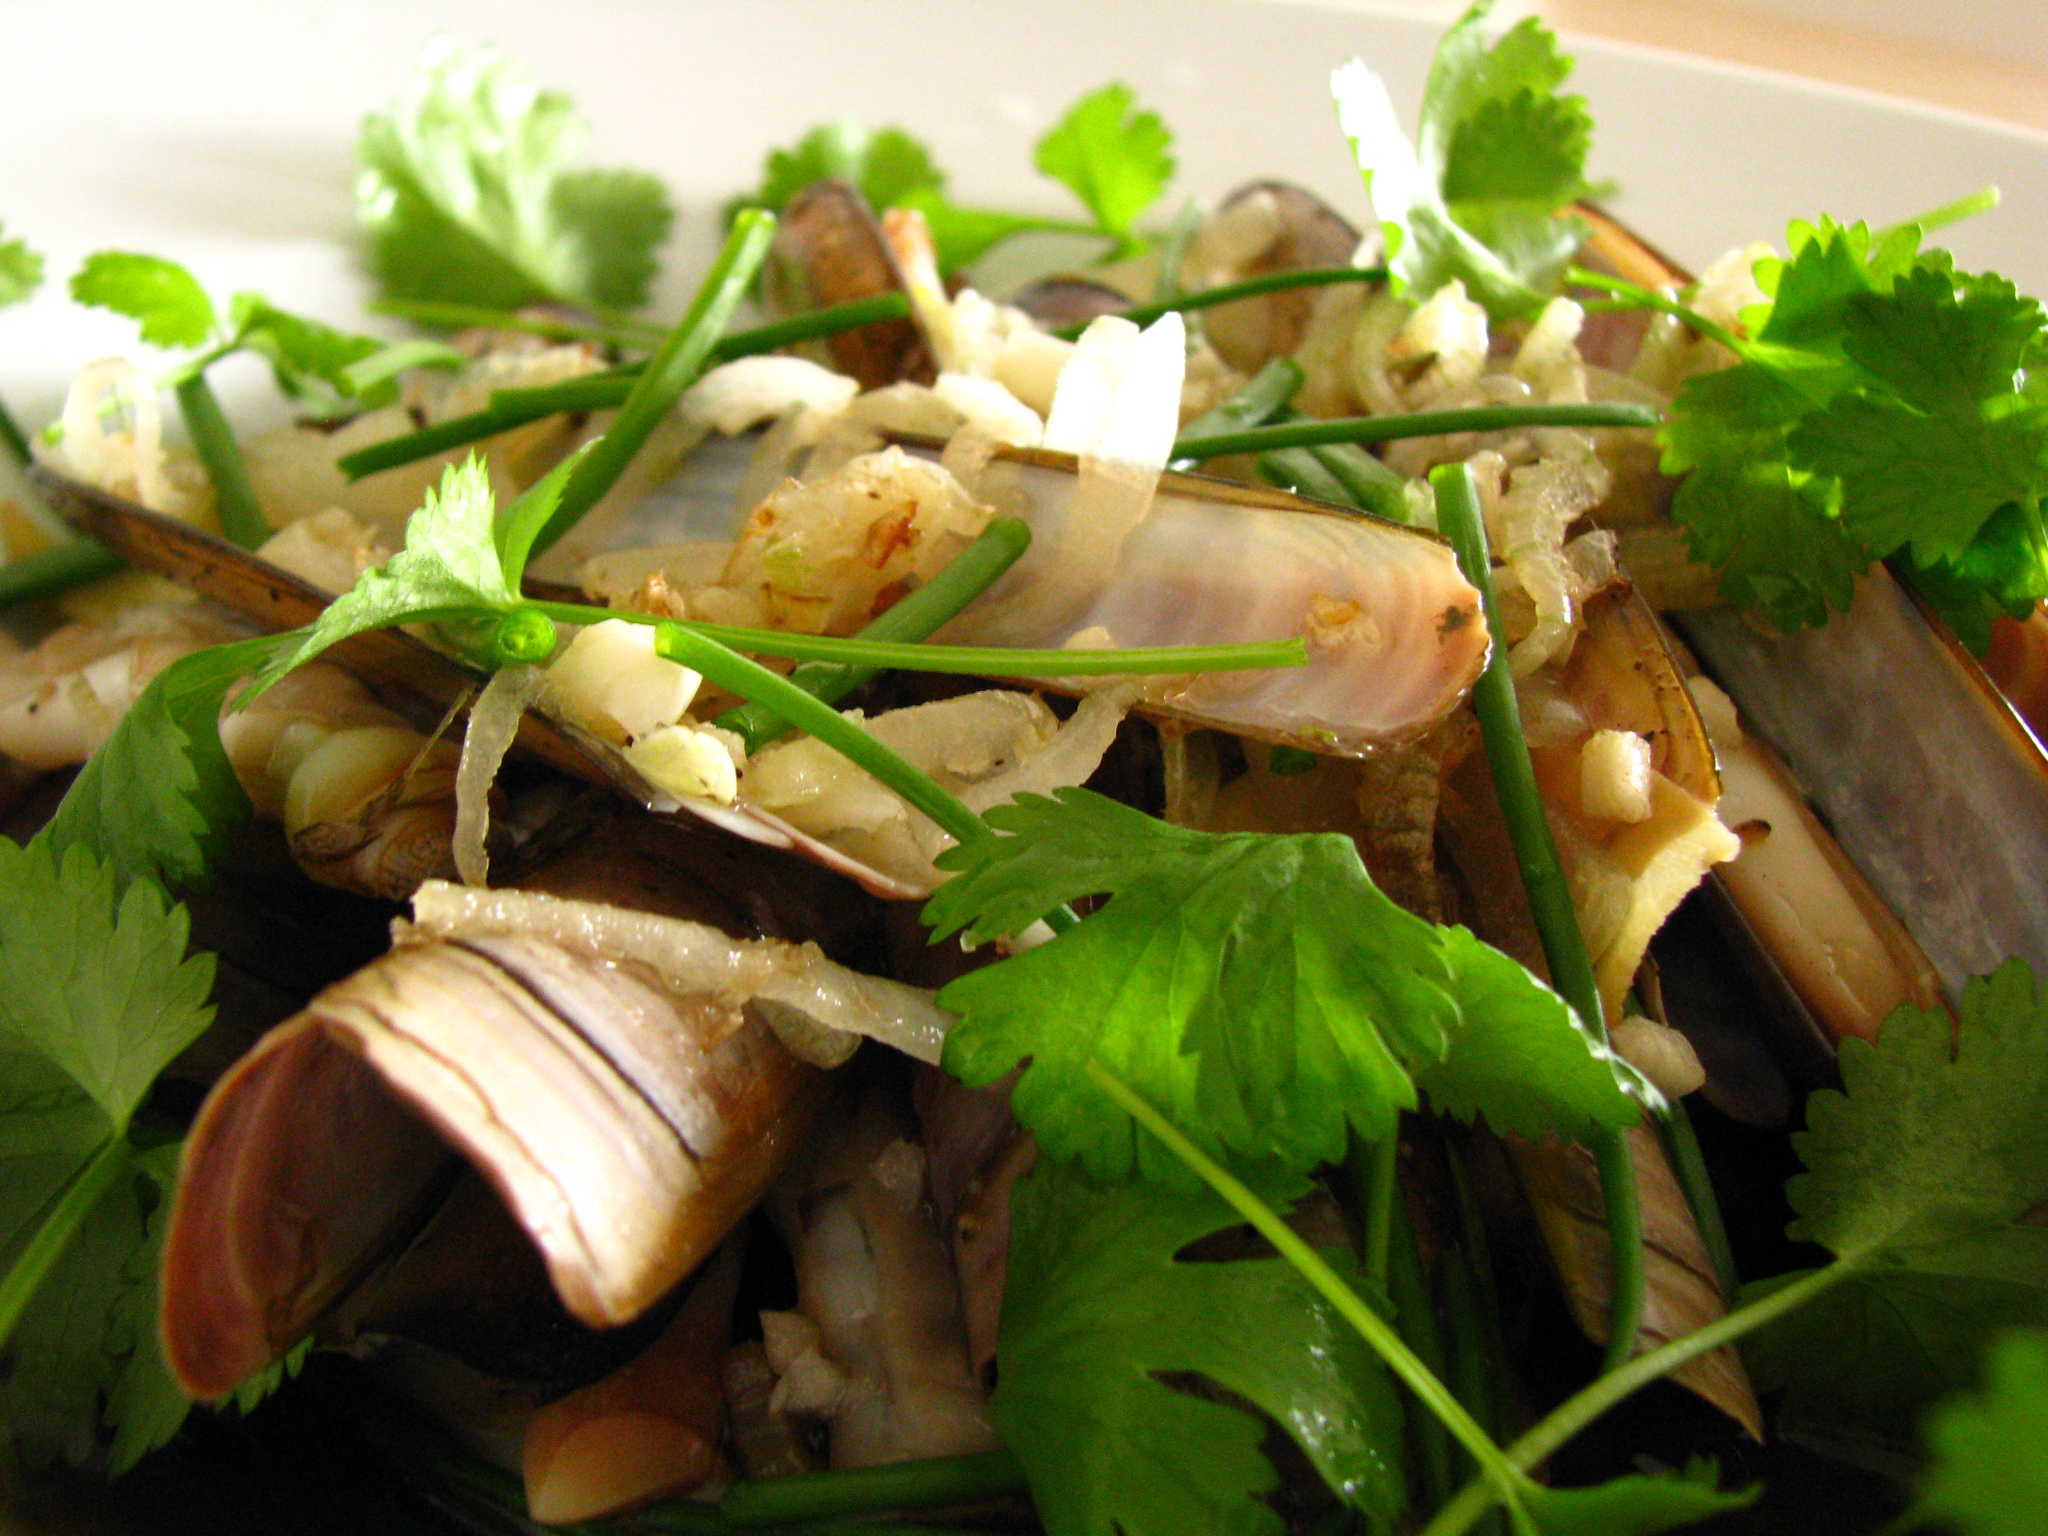 Steamed razor clams with sizzling garlic 香蒜蒸竹蛏